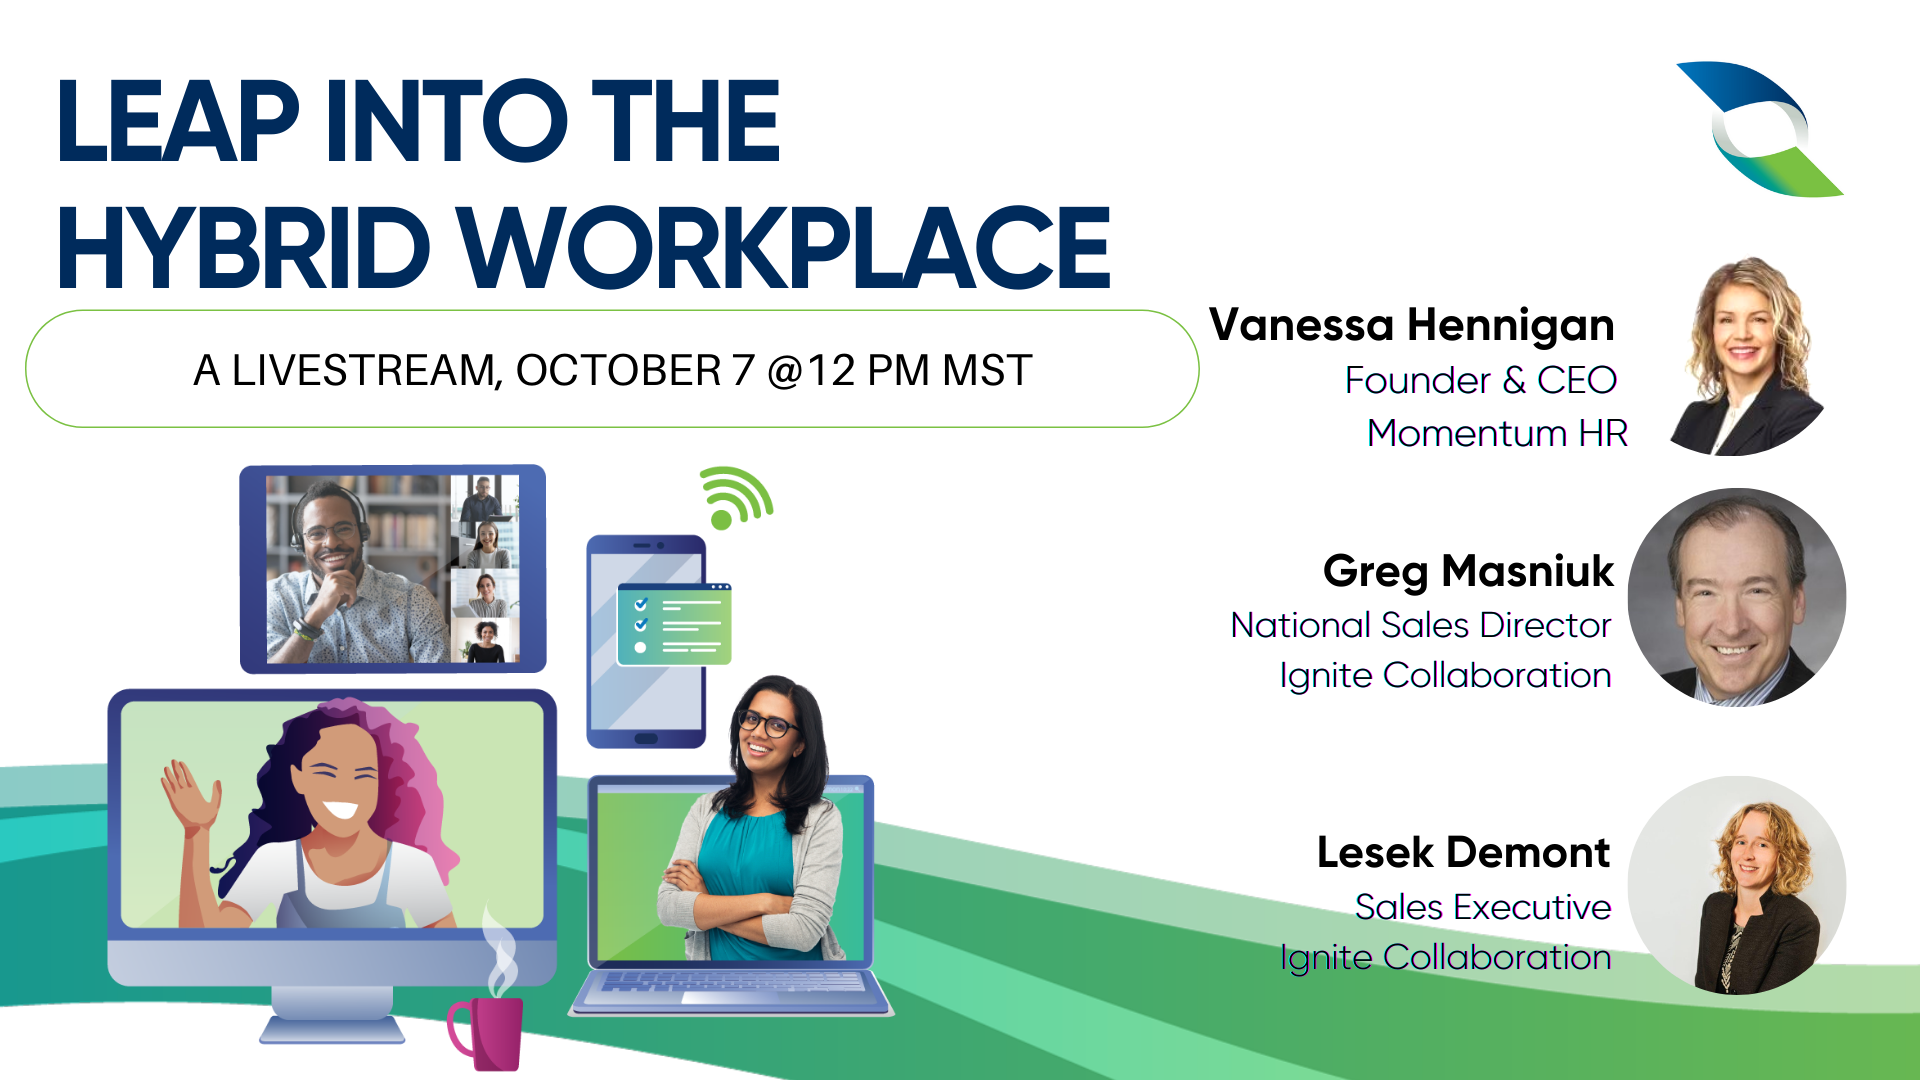 Leap into the Hybrid Workplace